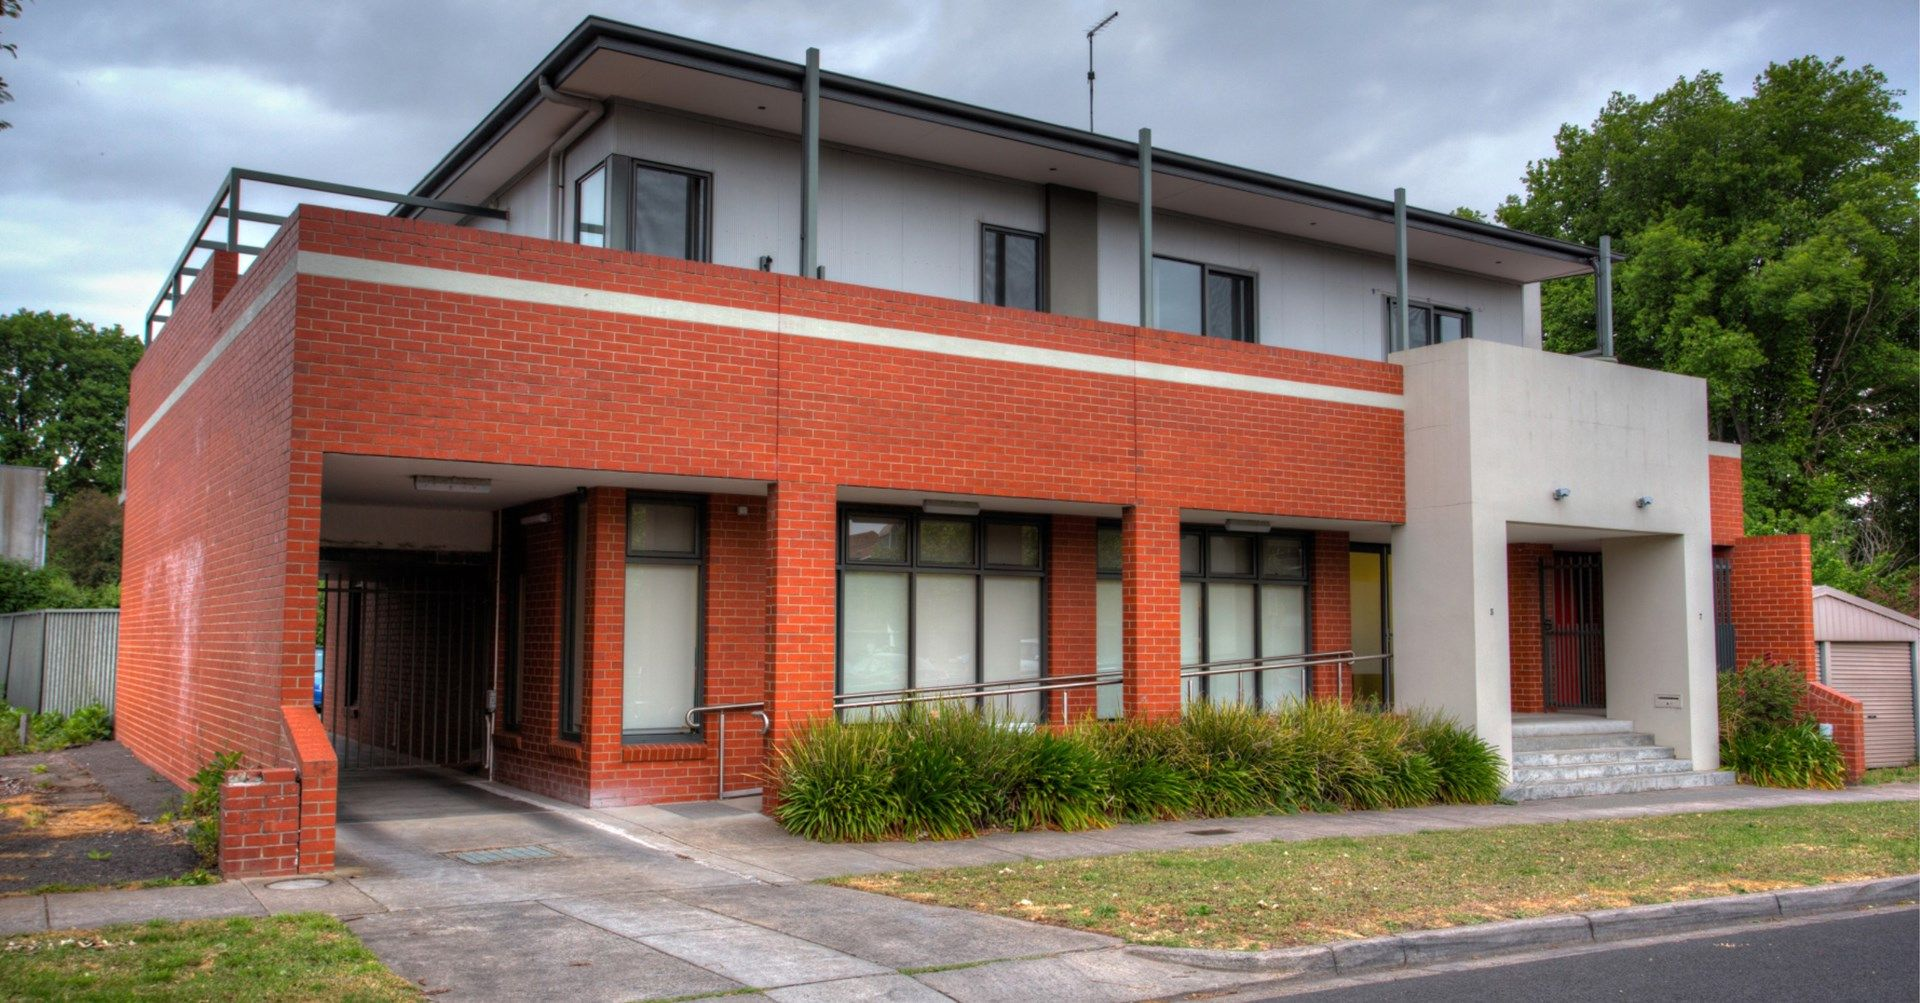 7 Anderson Street East, Ballarat Central VIC 3350, Image 0